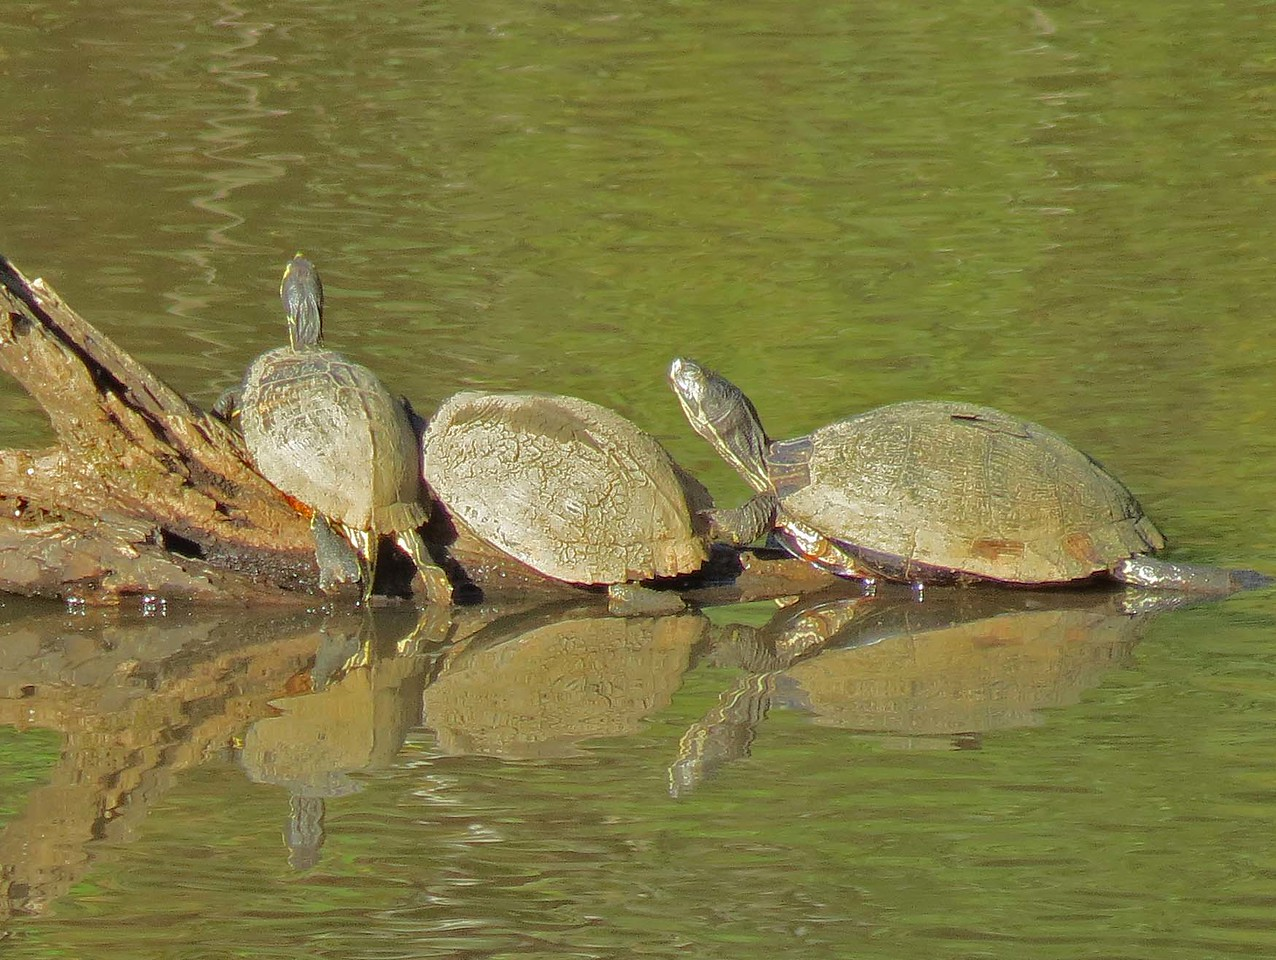 Muddy Turtles